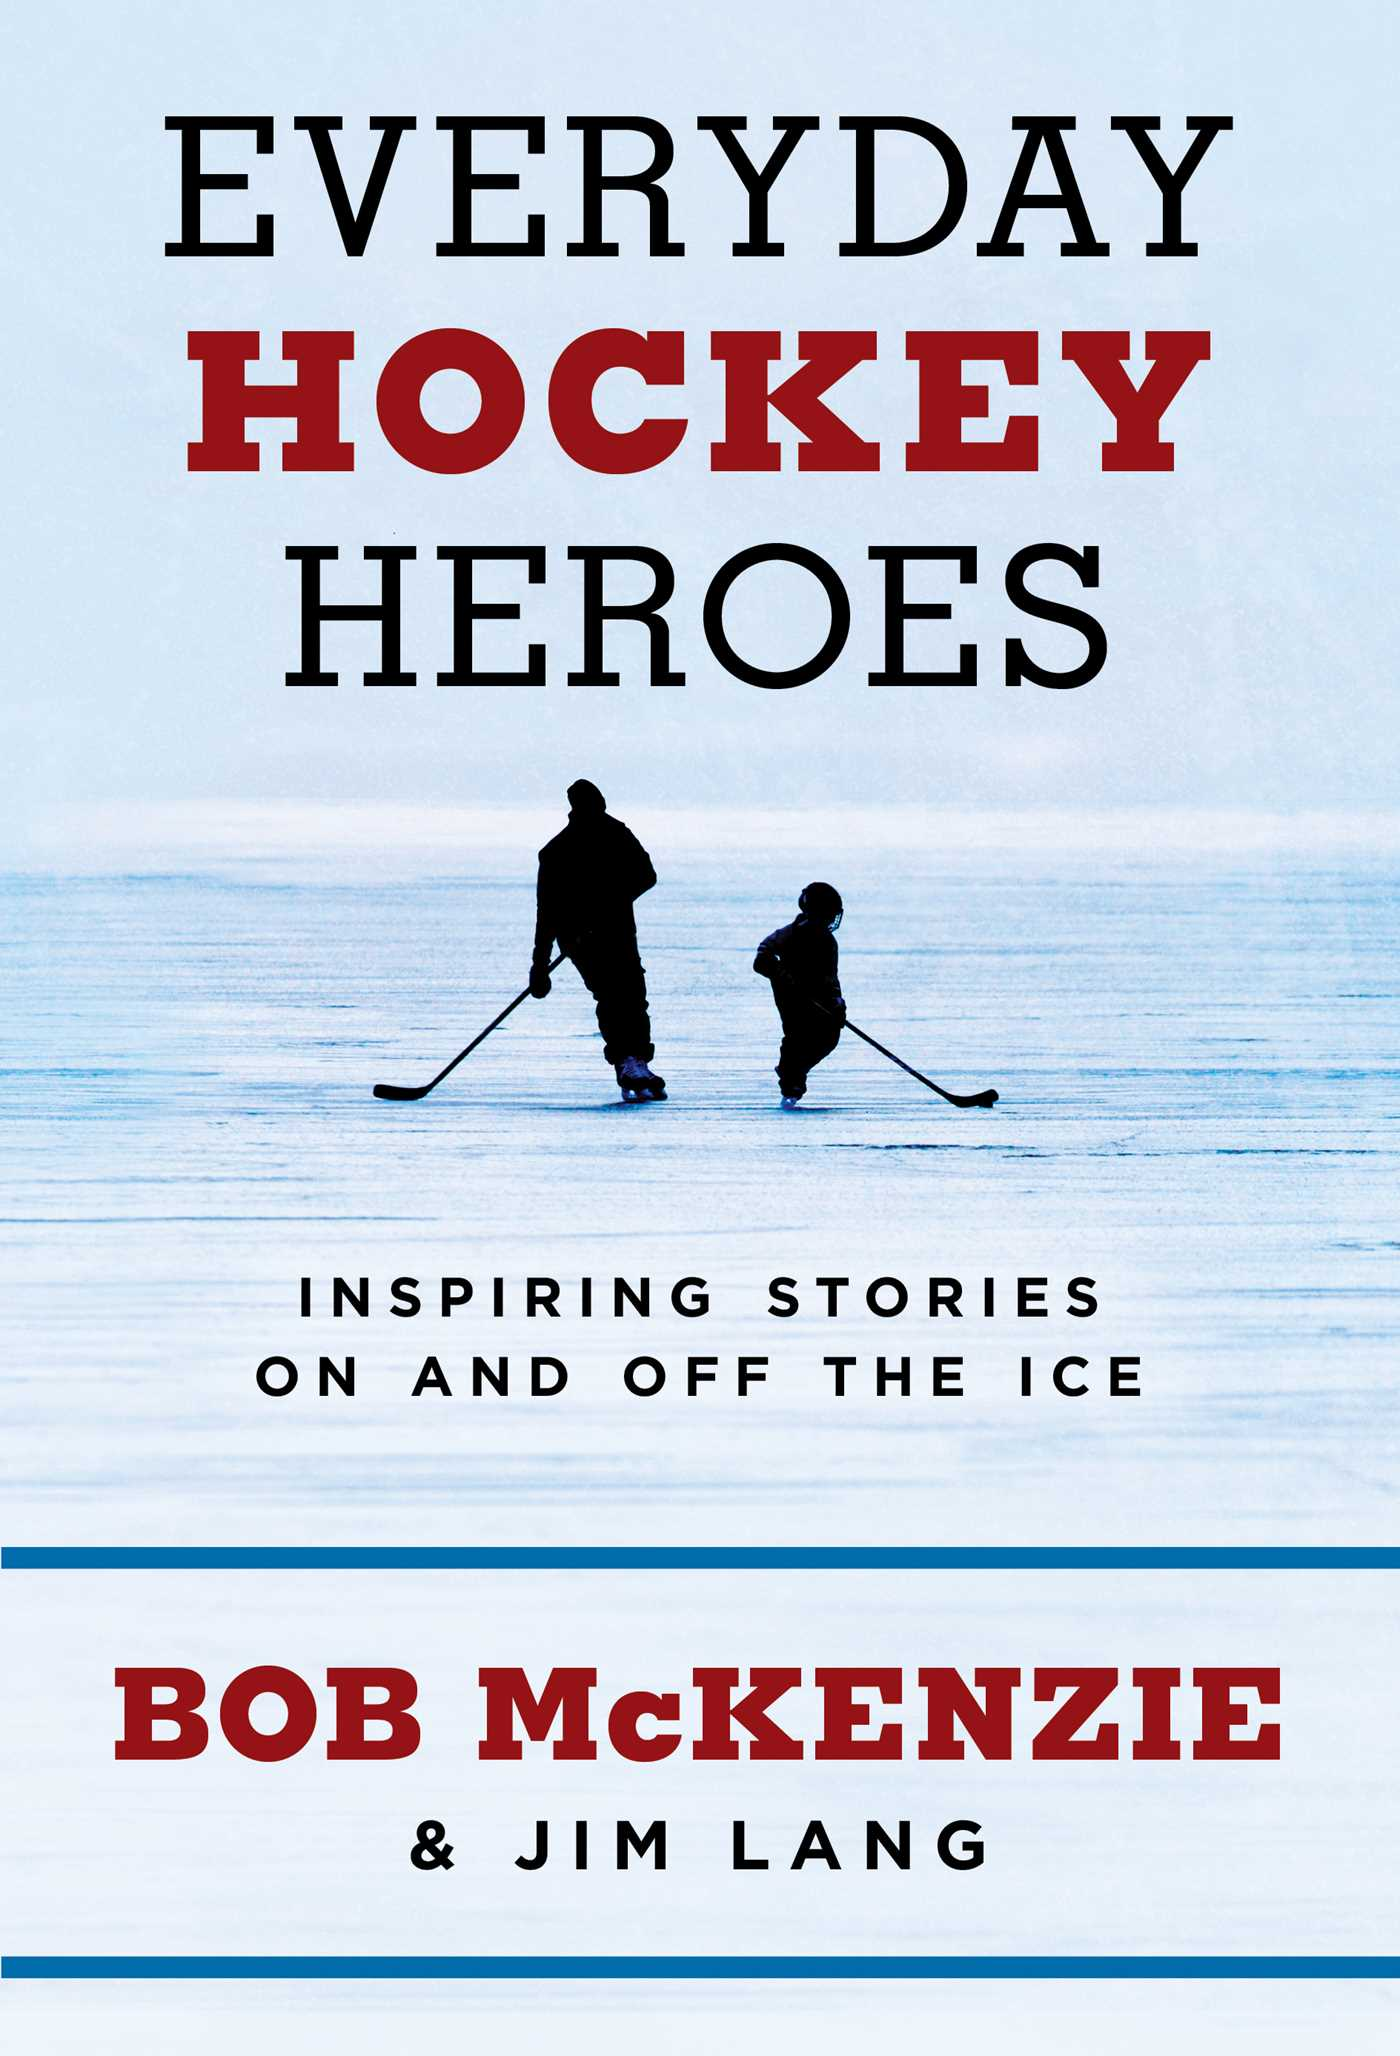 Everyday hockey heroes 9781508259169 hr